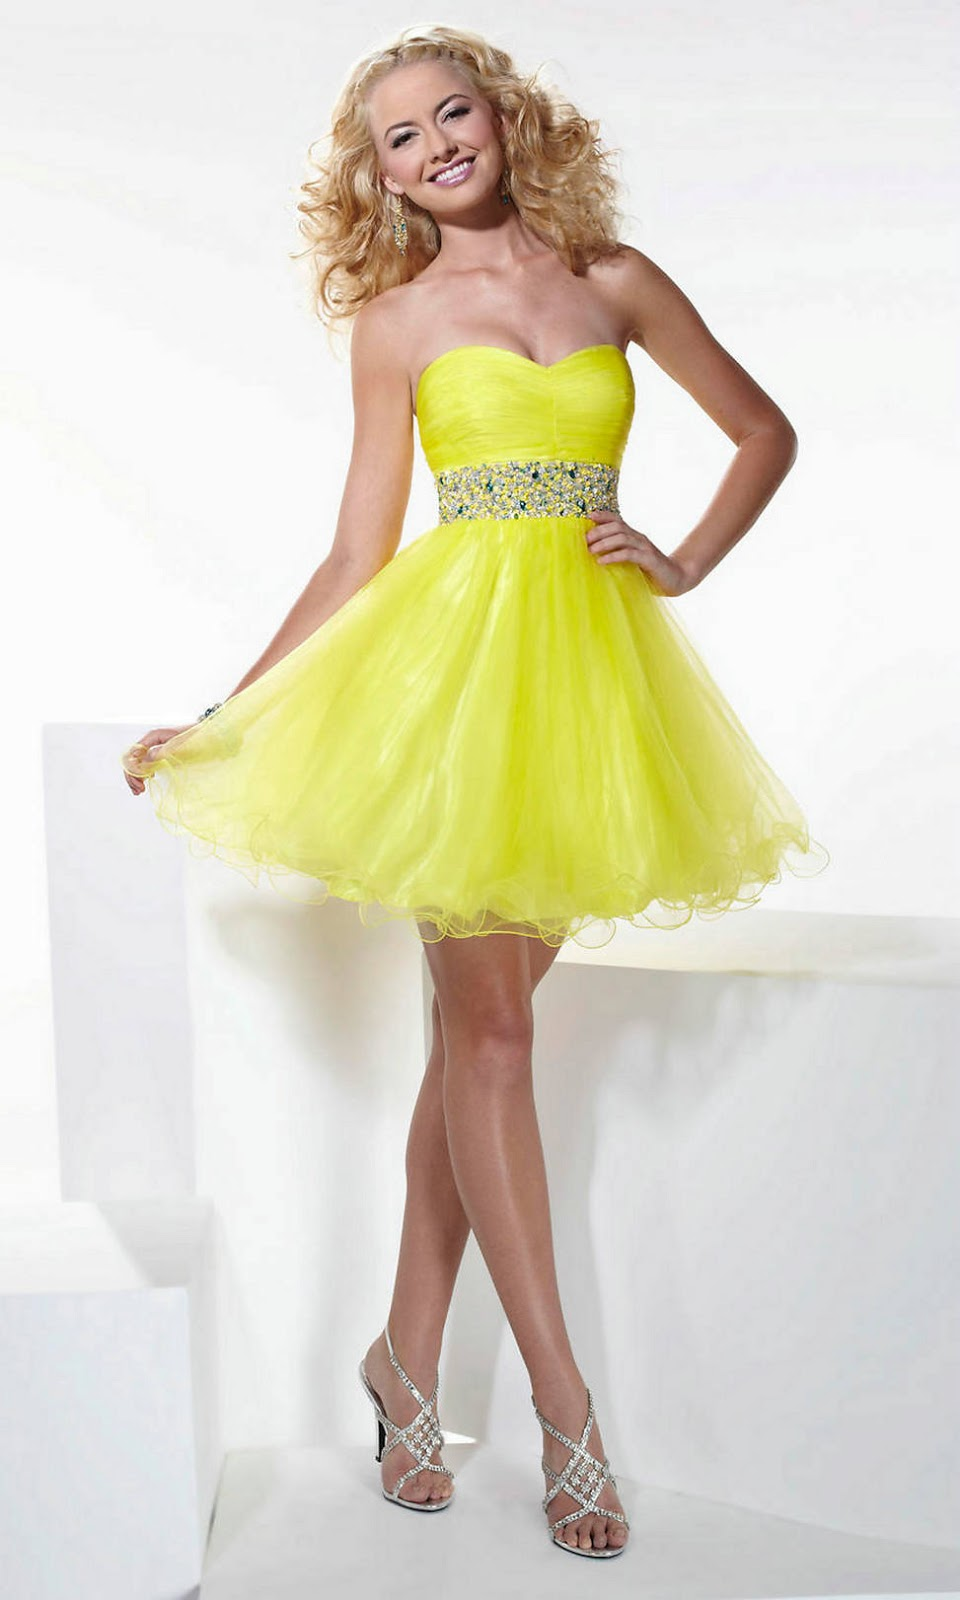 HAIRCUTS FOR LONG FACES: SHORT PROM DRESSES ARE VERY TRENDY